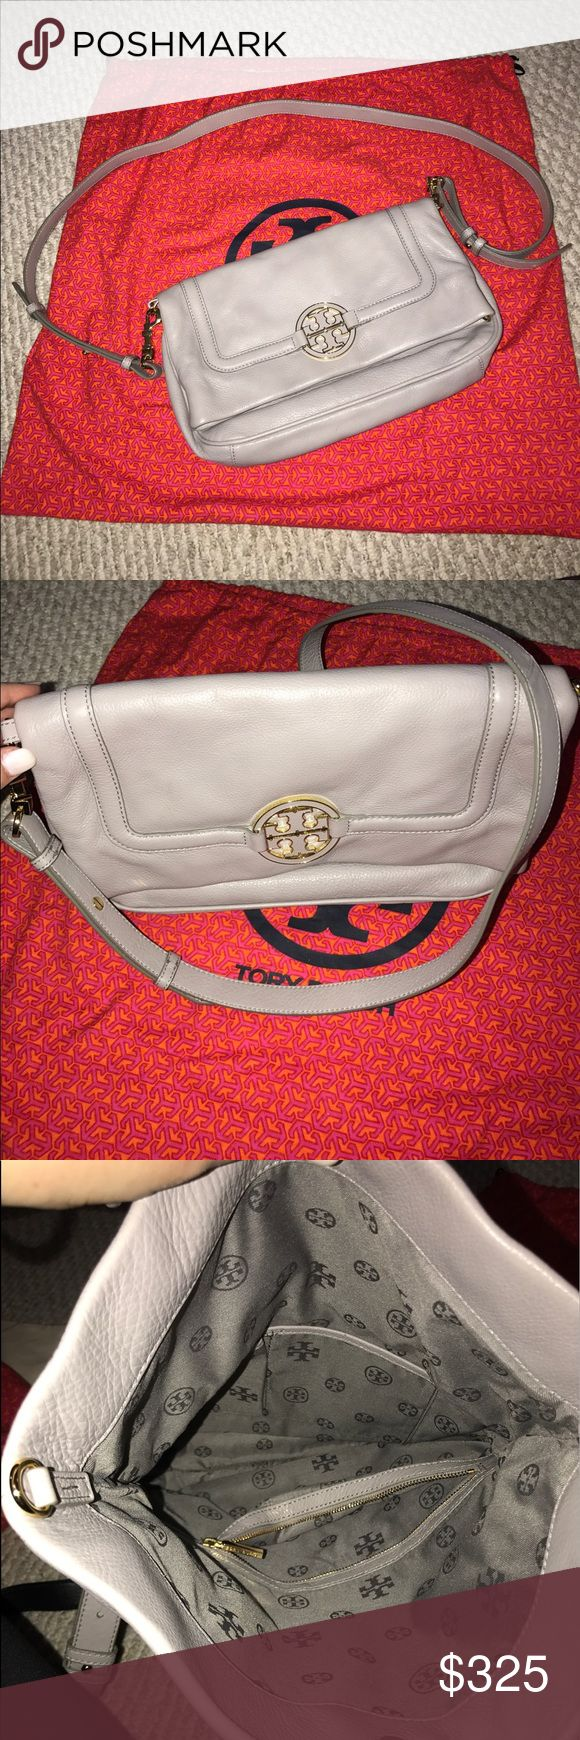 Amanda Foldover Crossbody bag Like new!! Purchased and used only a handful of times! Grey Tory Burch Amanda messenger or clutch bag. This grey leather and Gold hardware goes with everything! Flash and no flash pictures in listing. The leather is so soft. Nice sized for a cross body or Clutch 👛 Tory Burch Dust bag included! Tory Burch Bags Crossbody Bags